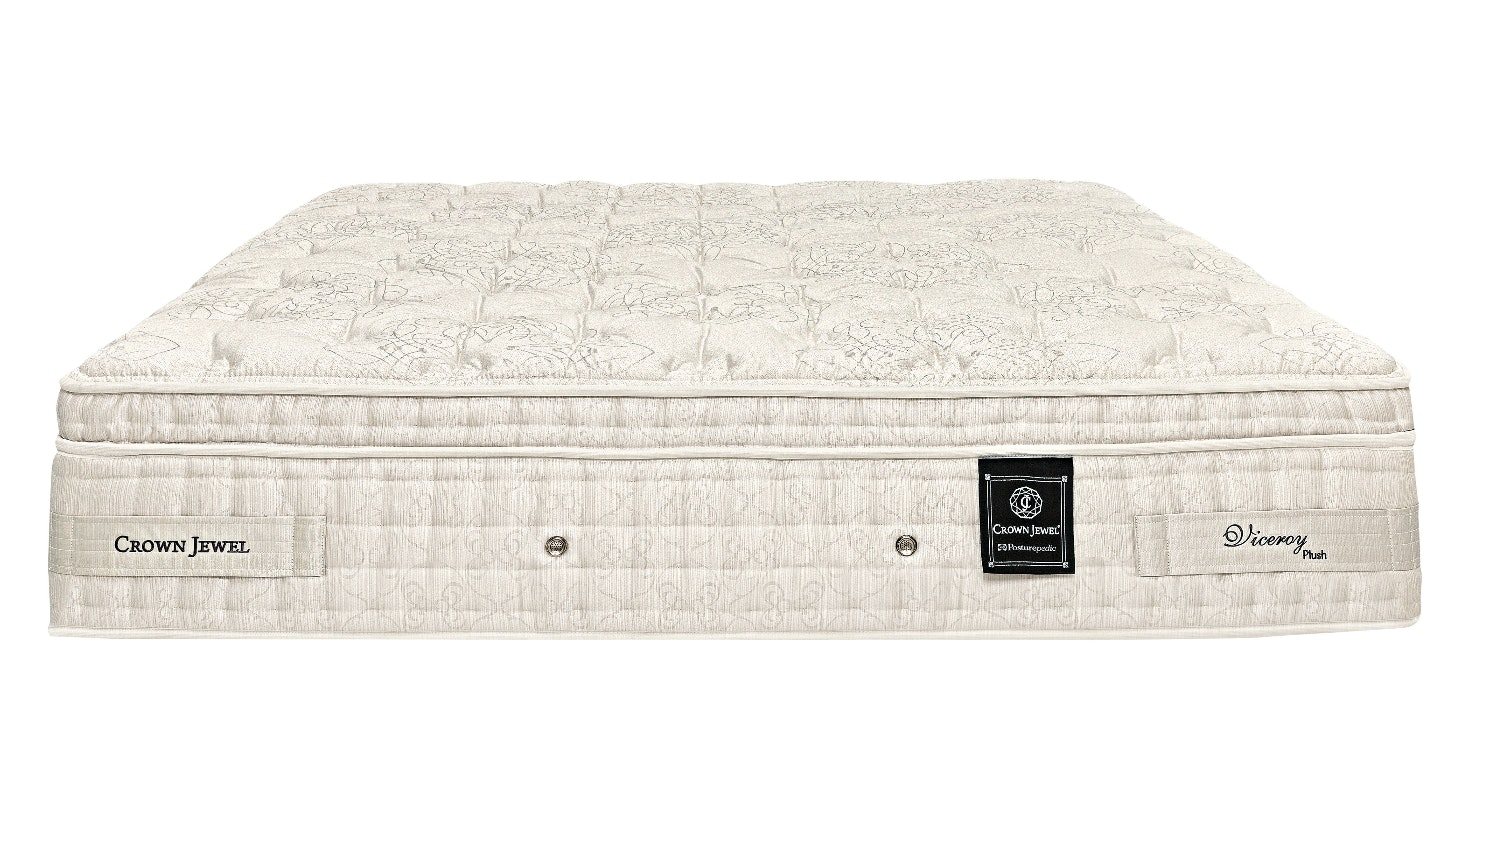 Sealy Crown Jewel Viceroy Plush Mattress